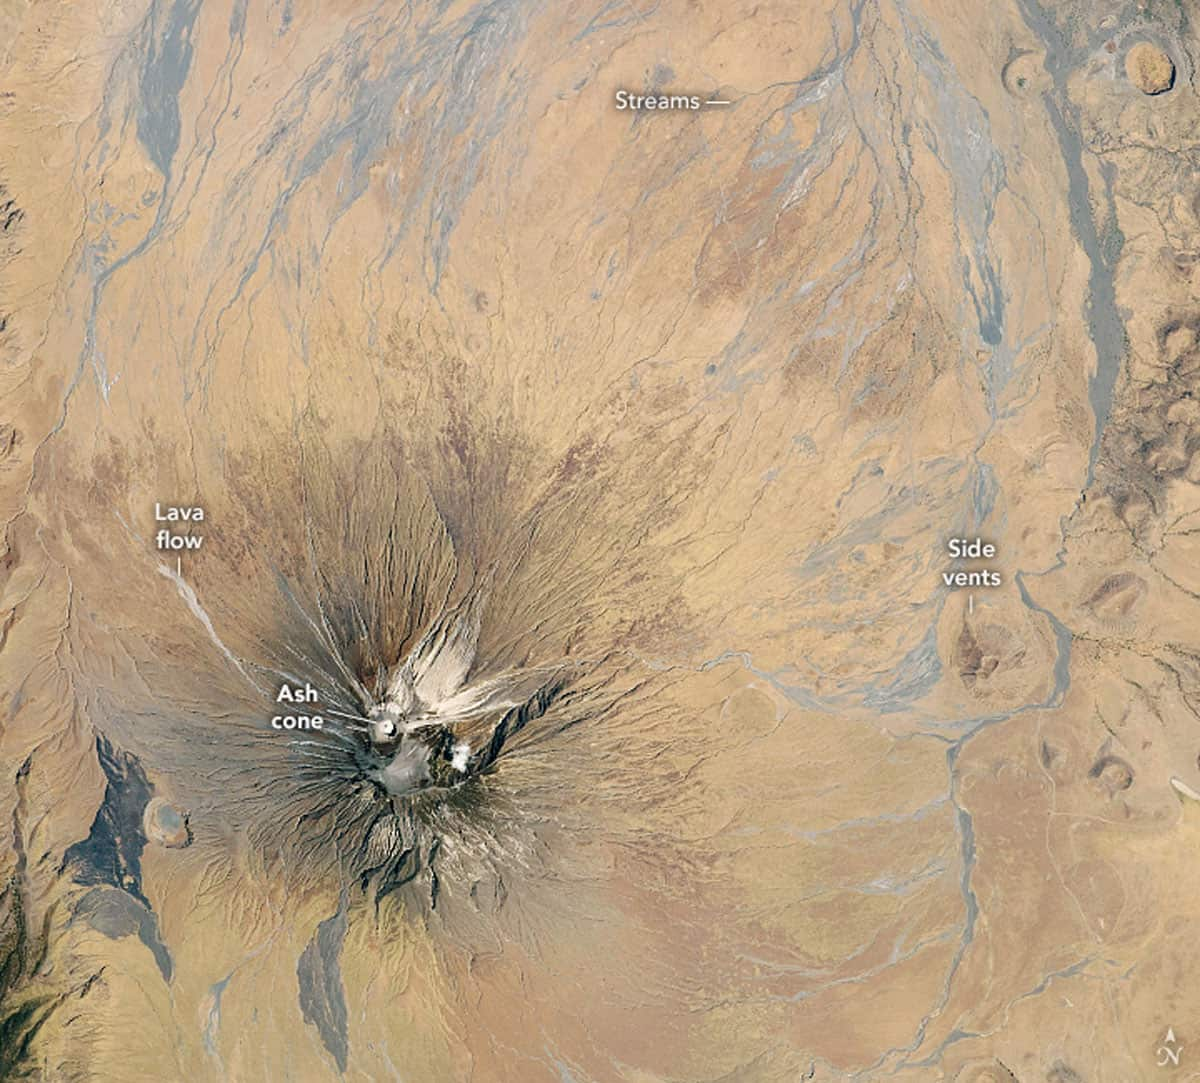 Astronaut photograph ISS063-E-104178 of Ol Doinyo Lengai was acquired on October 6, 2020